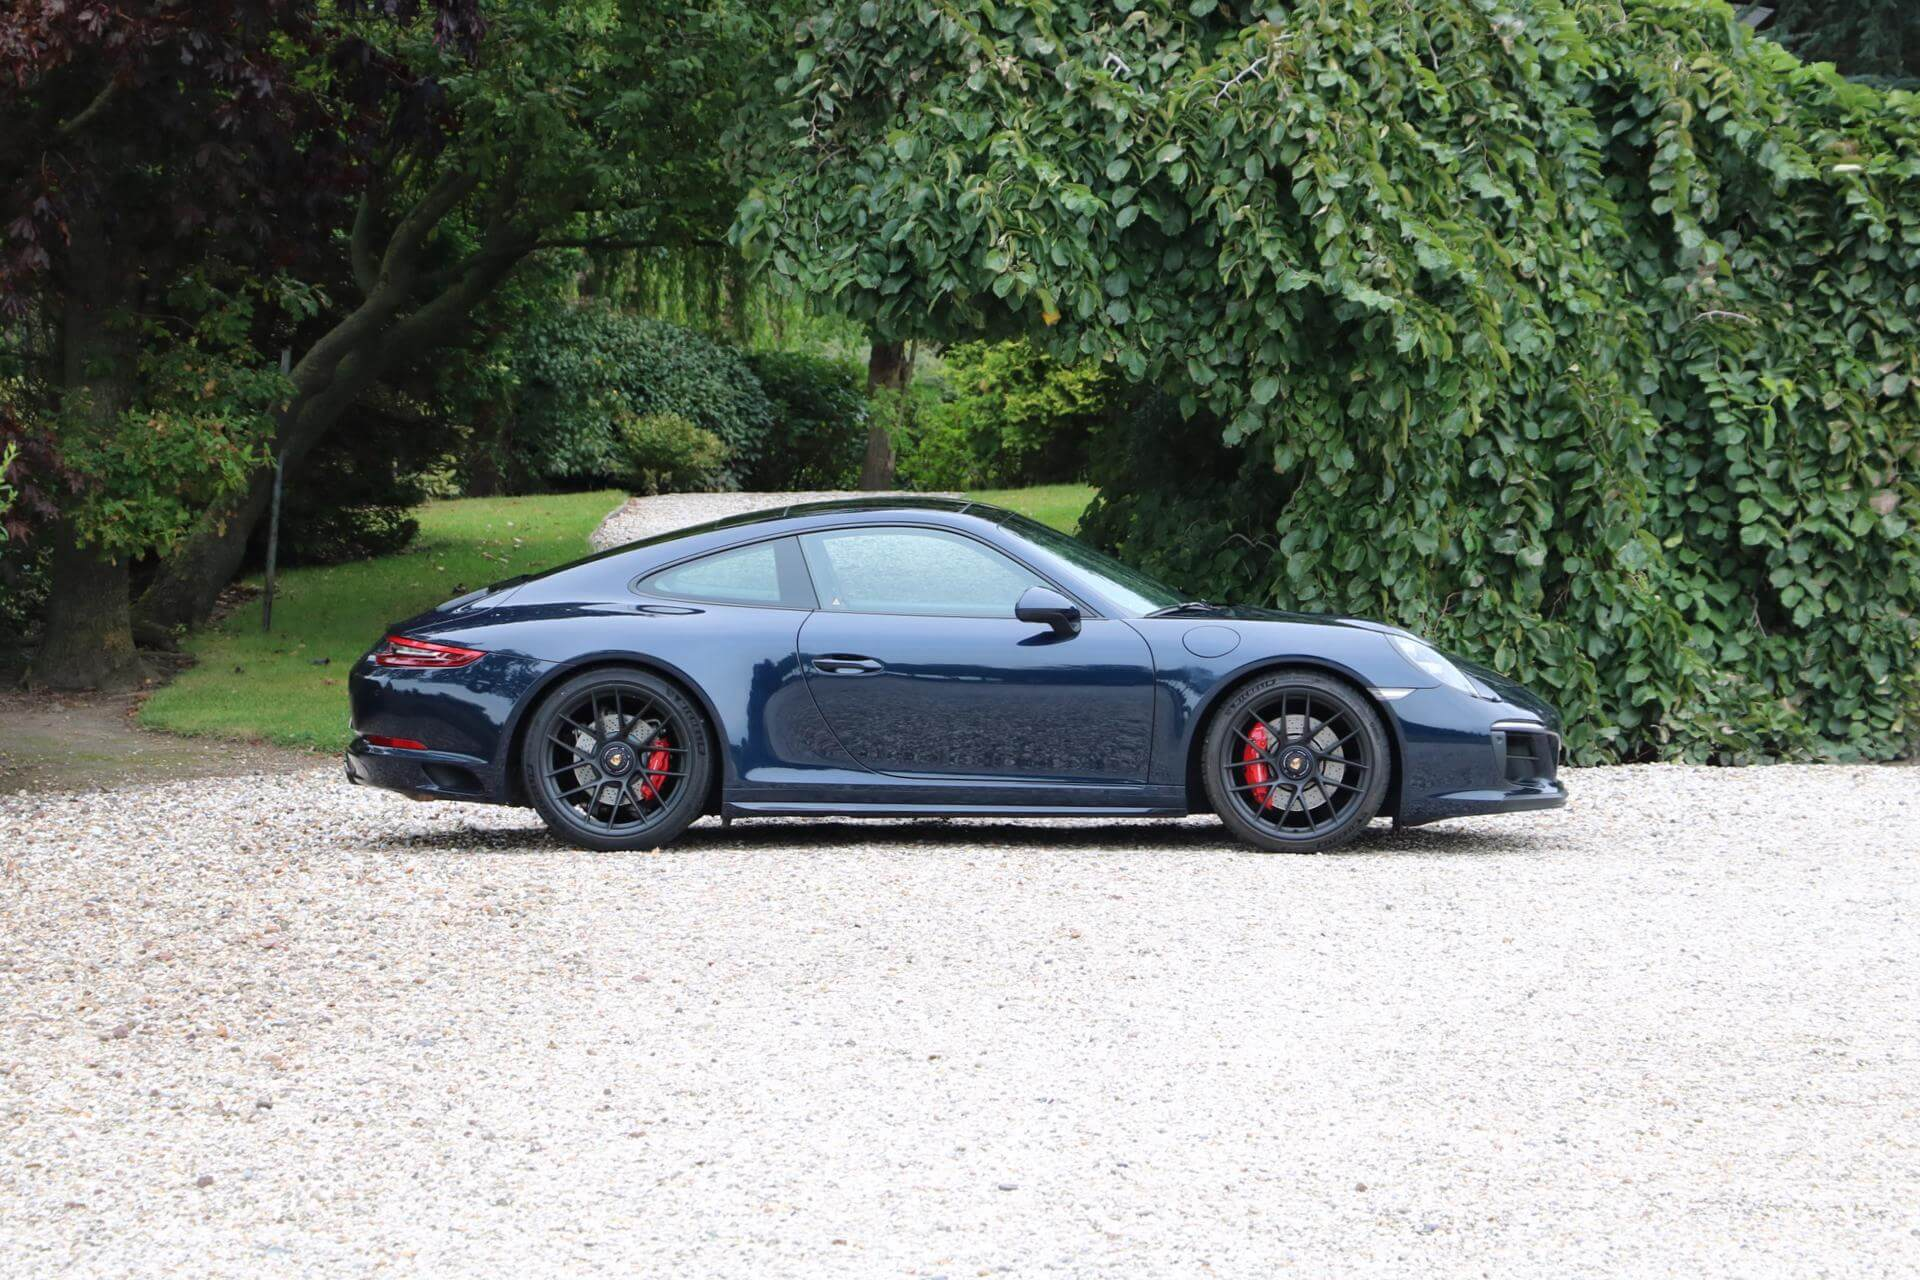 Real Art on Wheels | Porsche 991 GTS